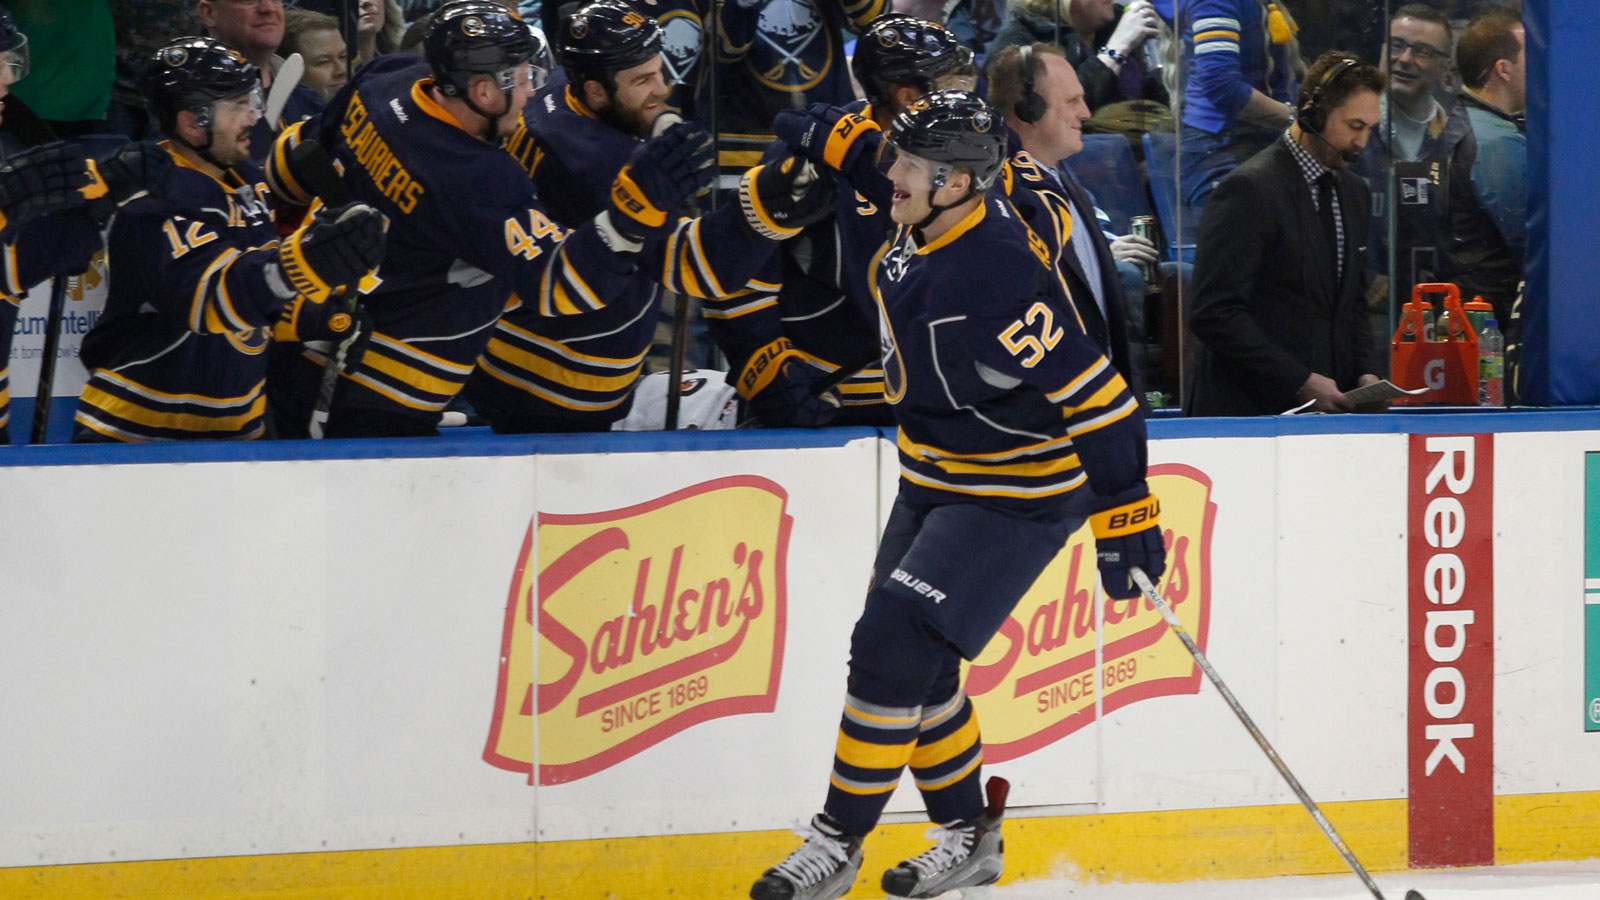 Ex-Gopher Fasching scores in first period of NHL debut